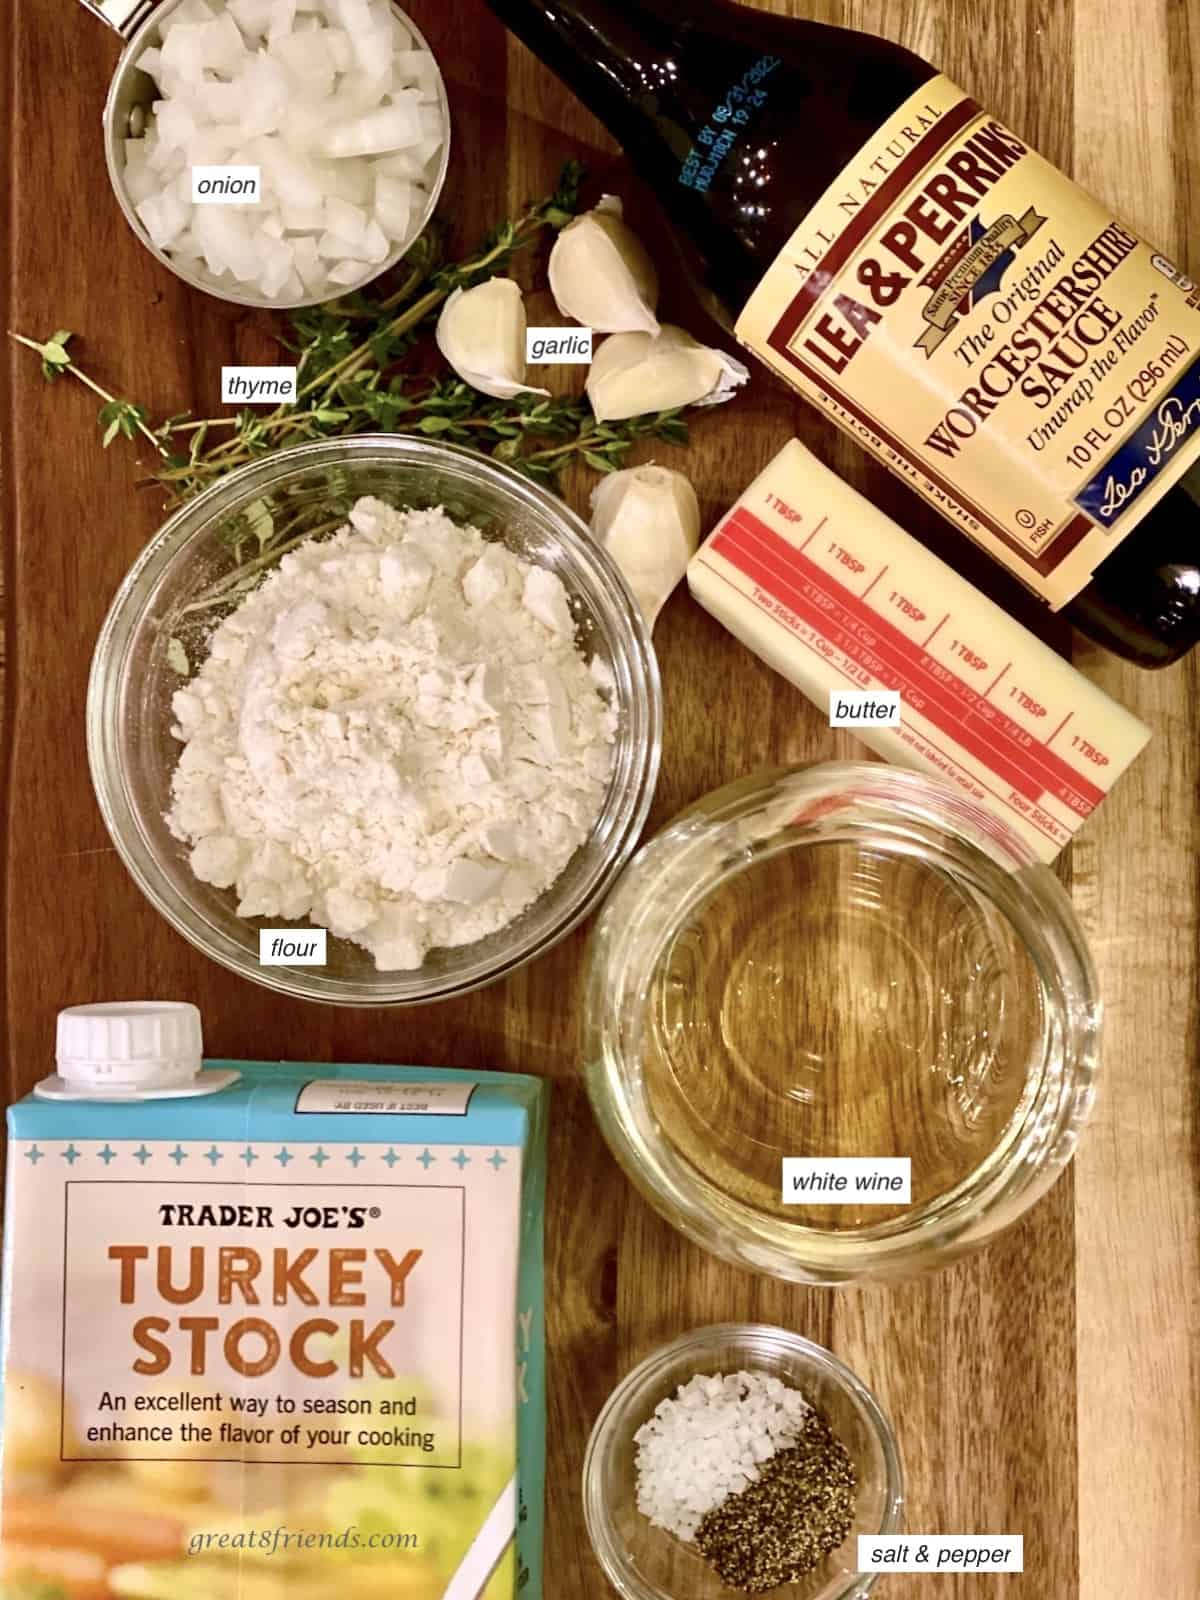 Ingredients laid out including turkey stock, flour, onions, thyme, Worcestershire sauce, butter, salt and pepper.